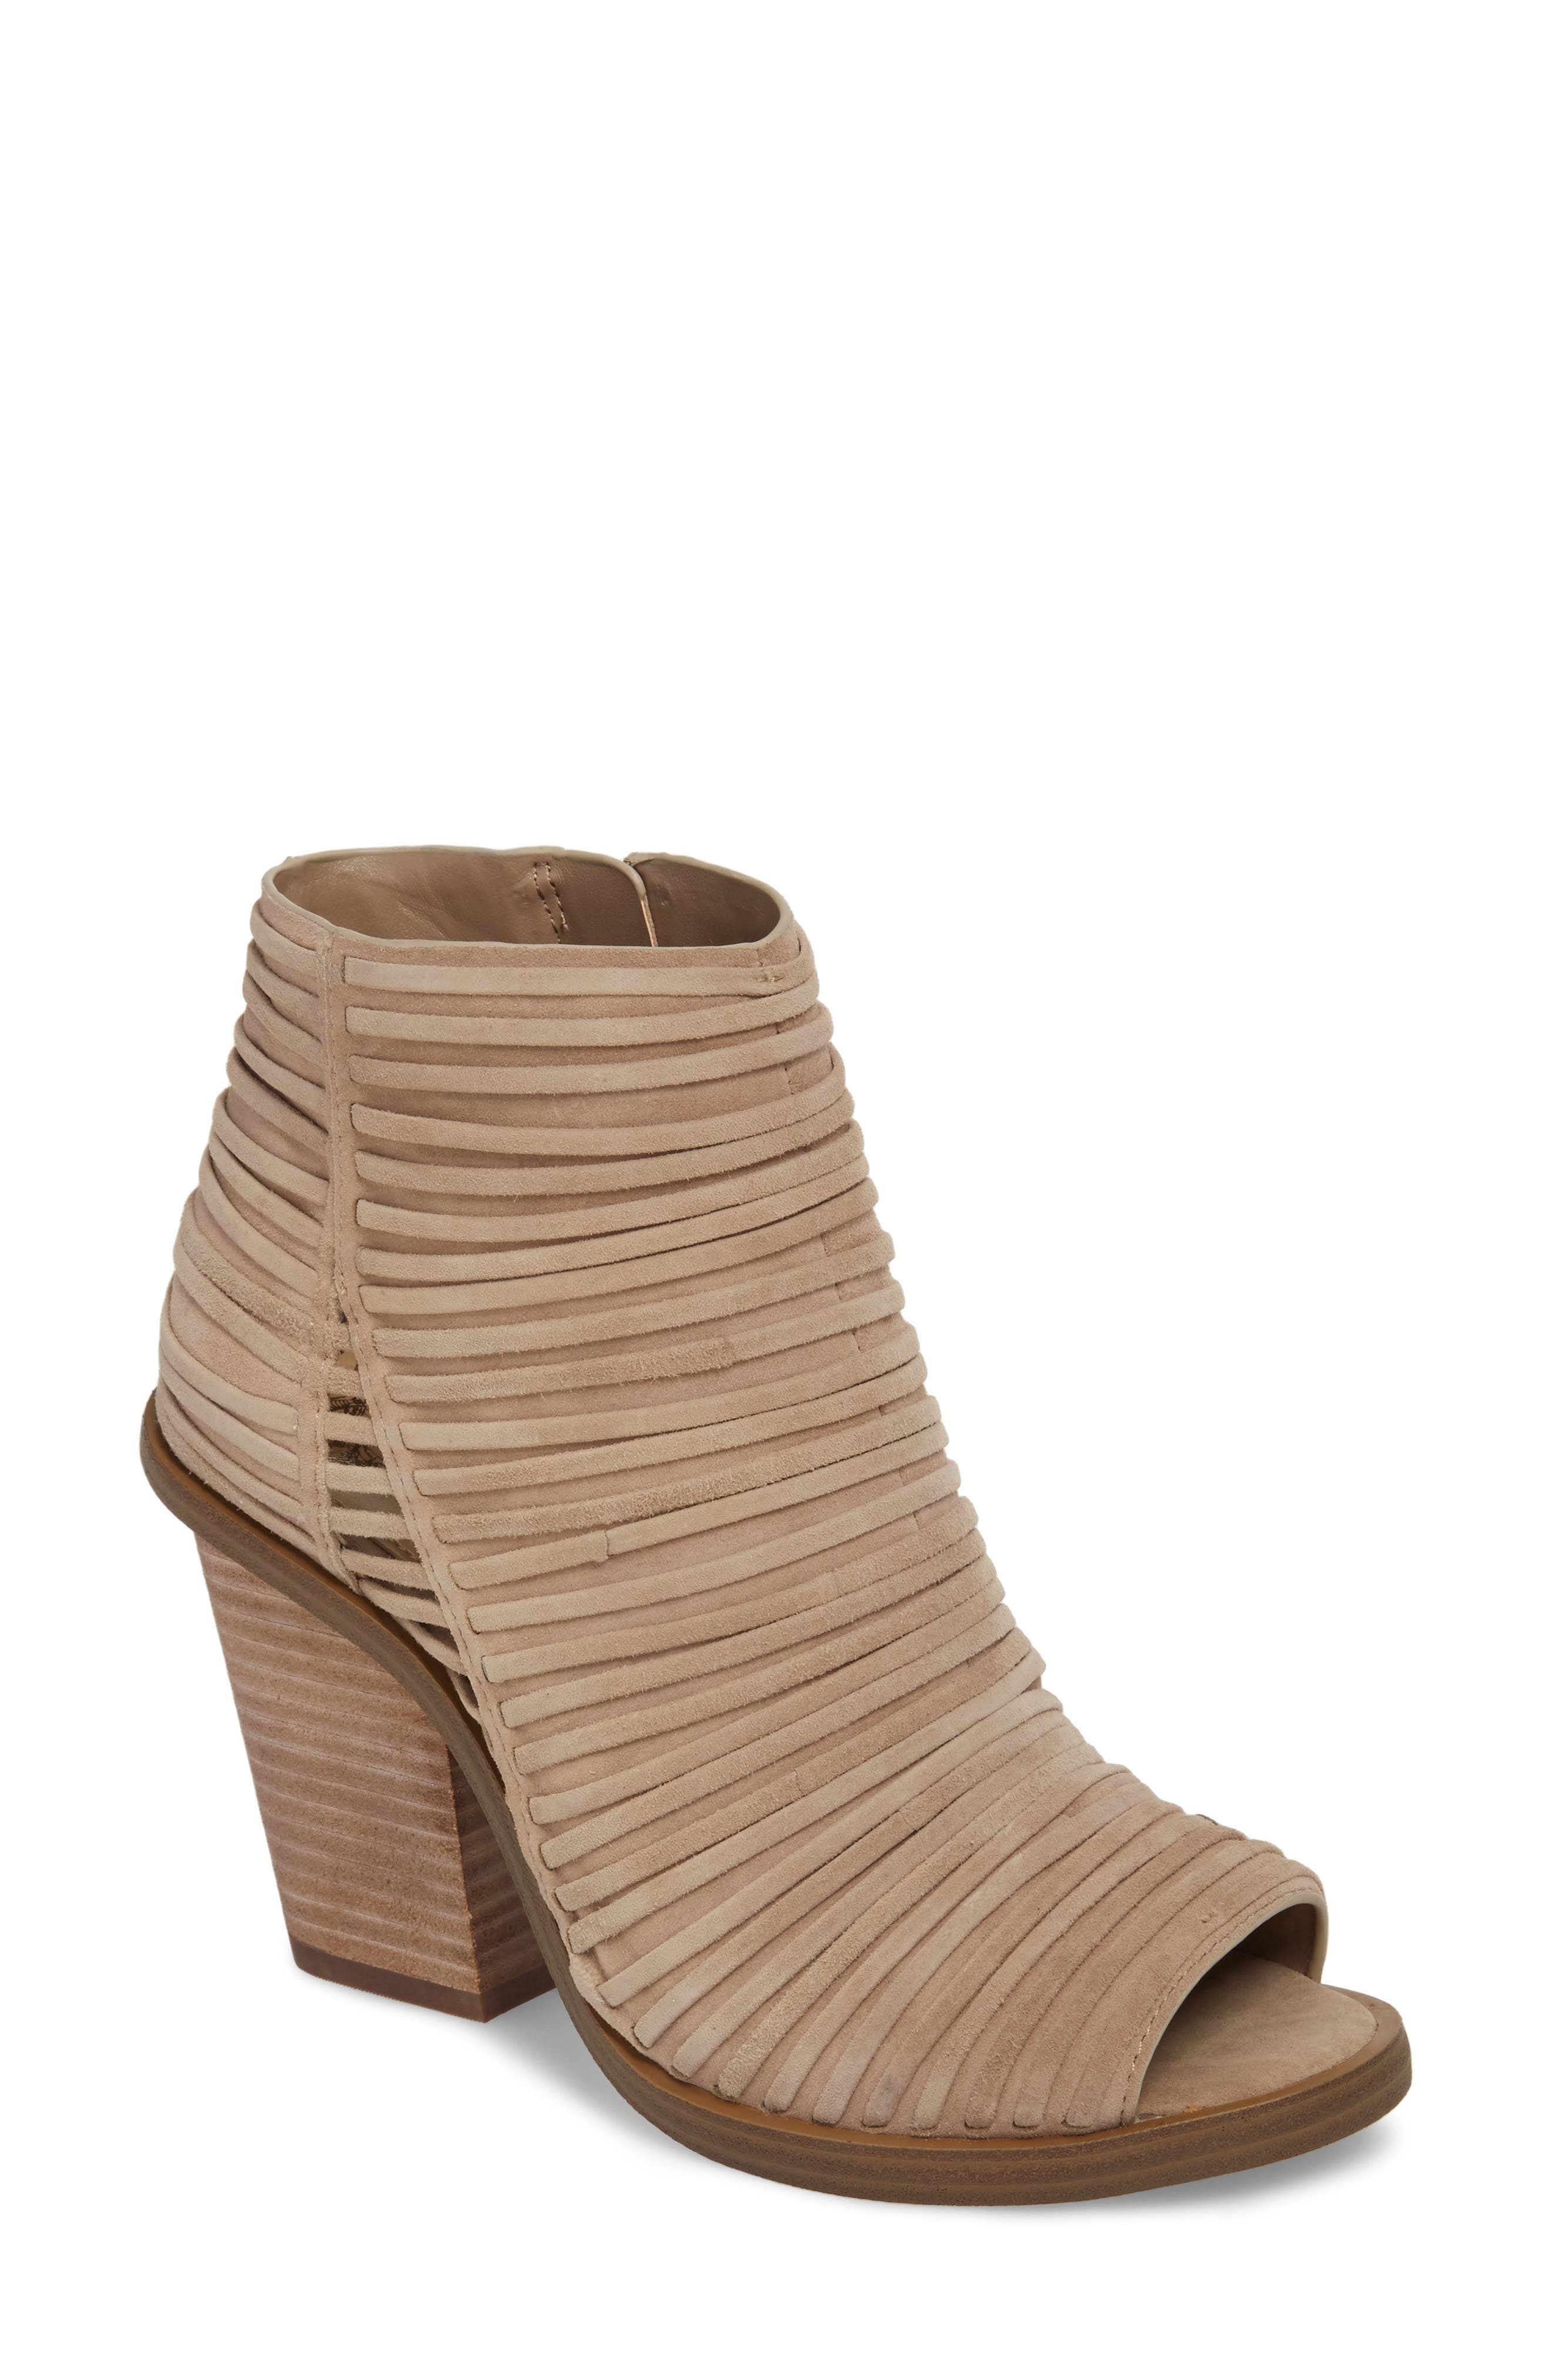 Feteena Bootie,                             Main thumbnail 1, color,                             FRENCH TAUPE SUEDE